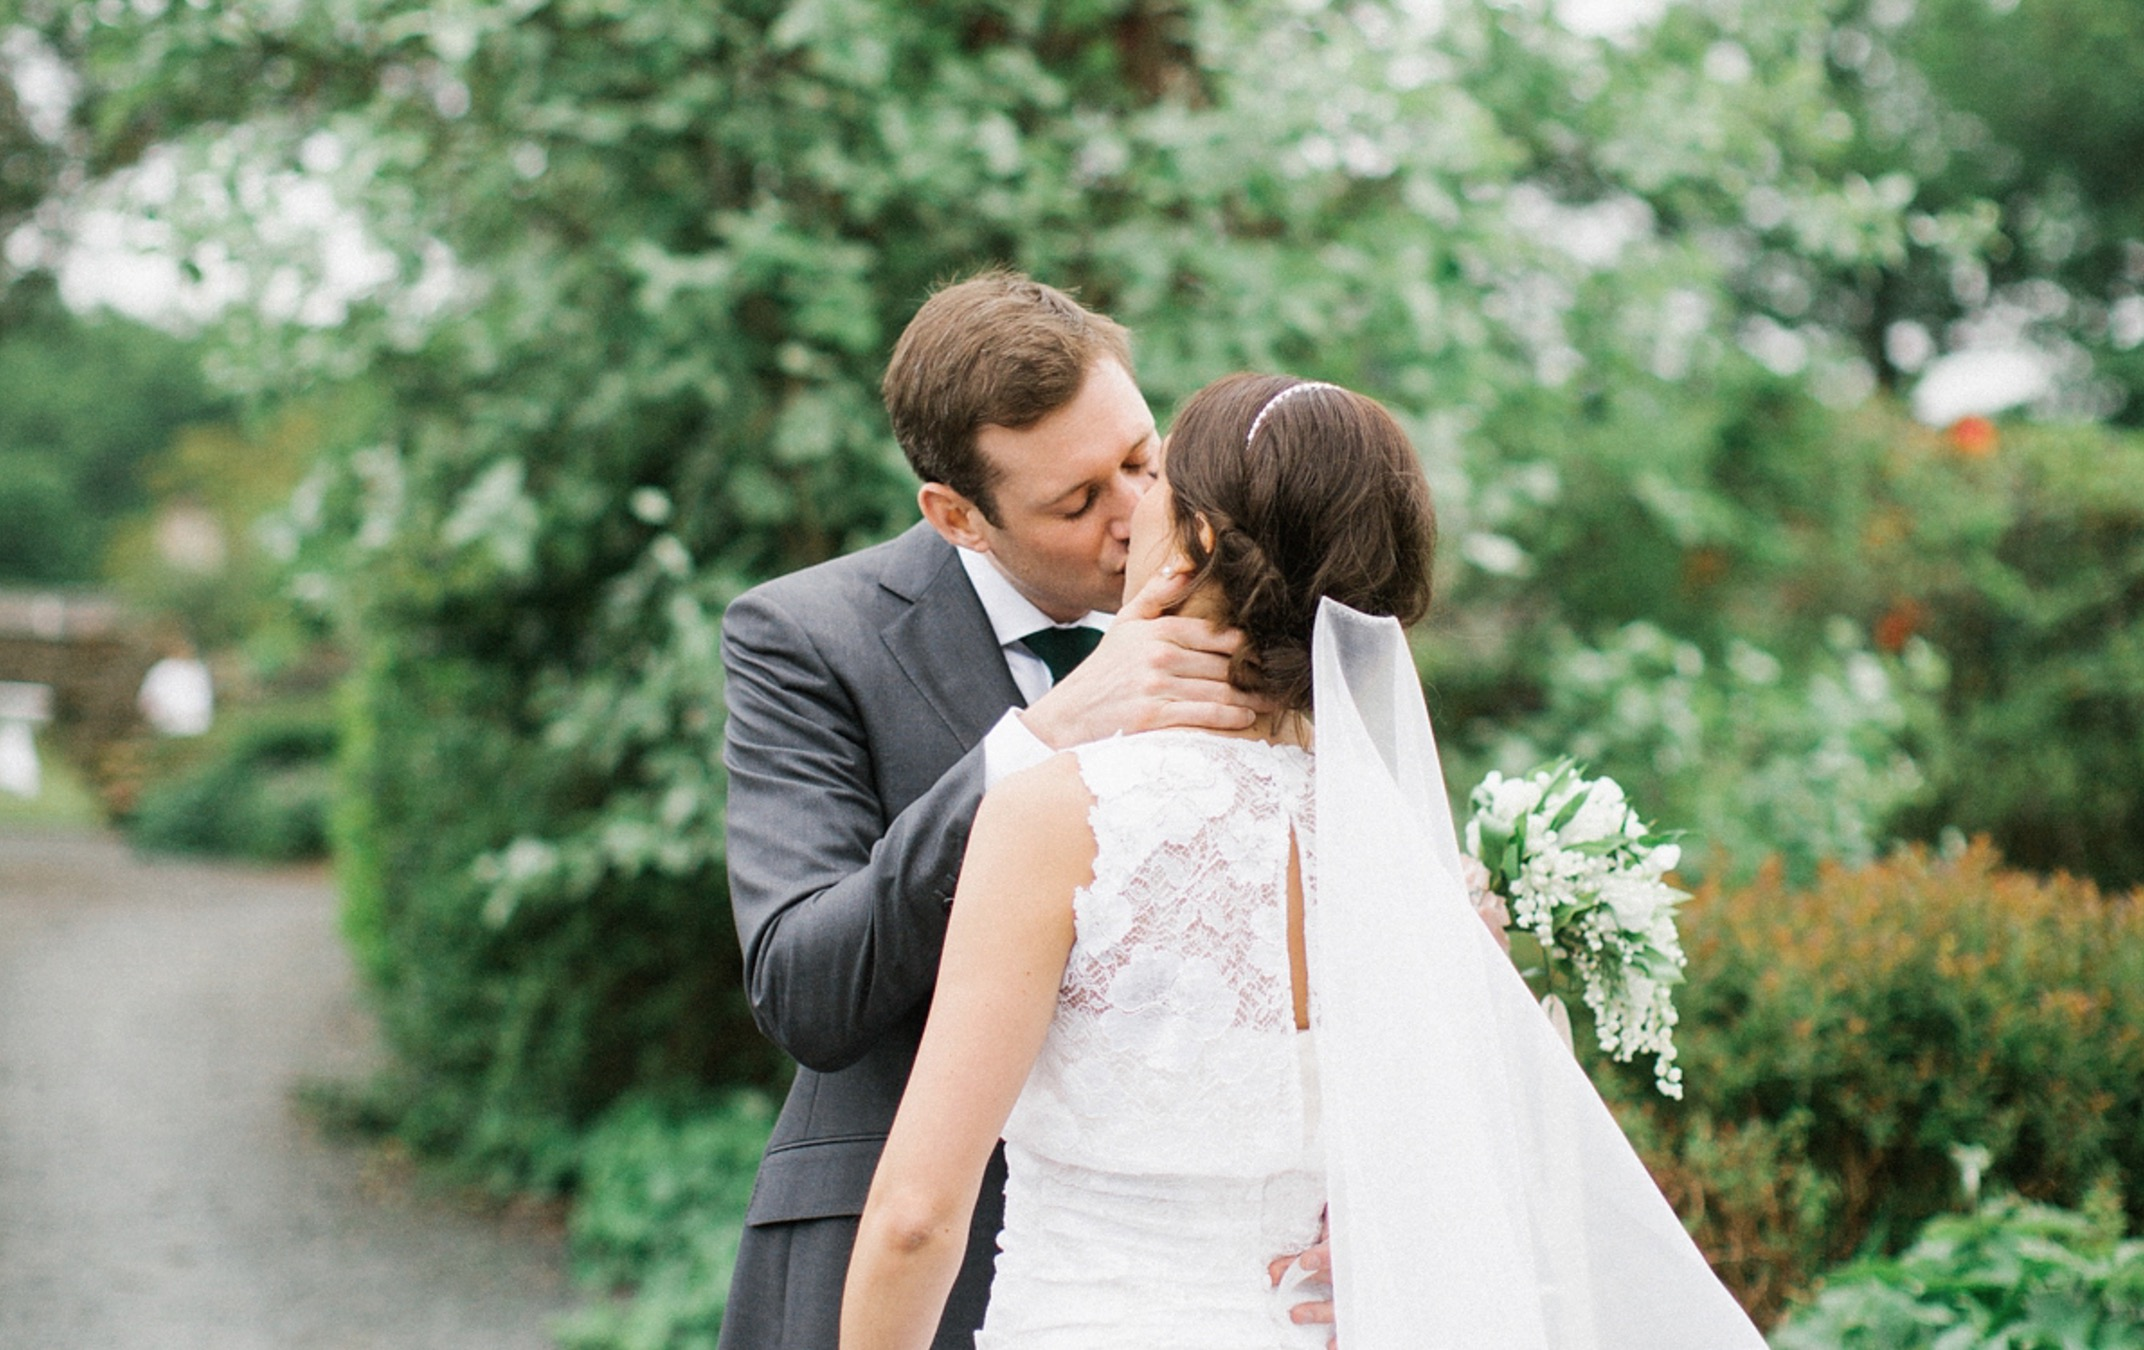 A Springtime Lake District Wedding Inspired by Fairies